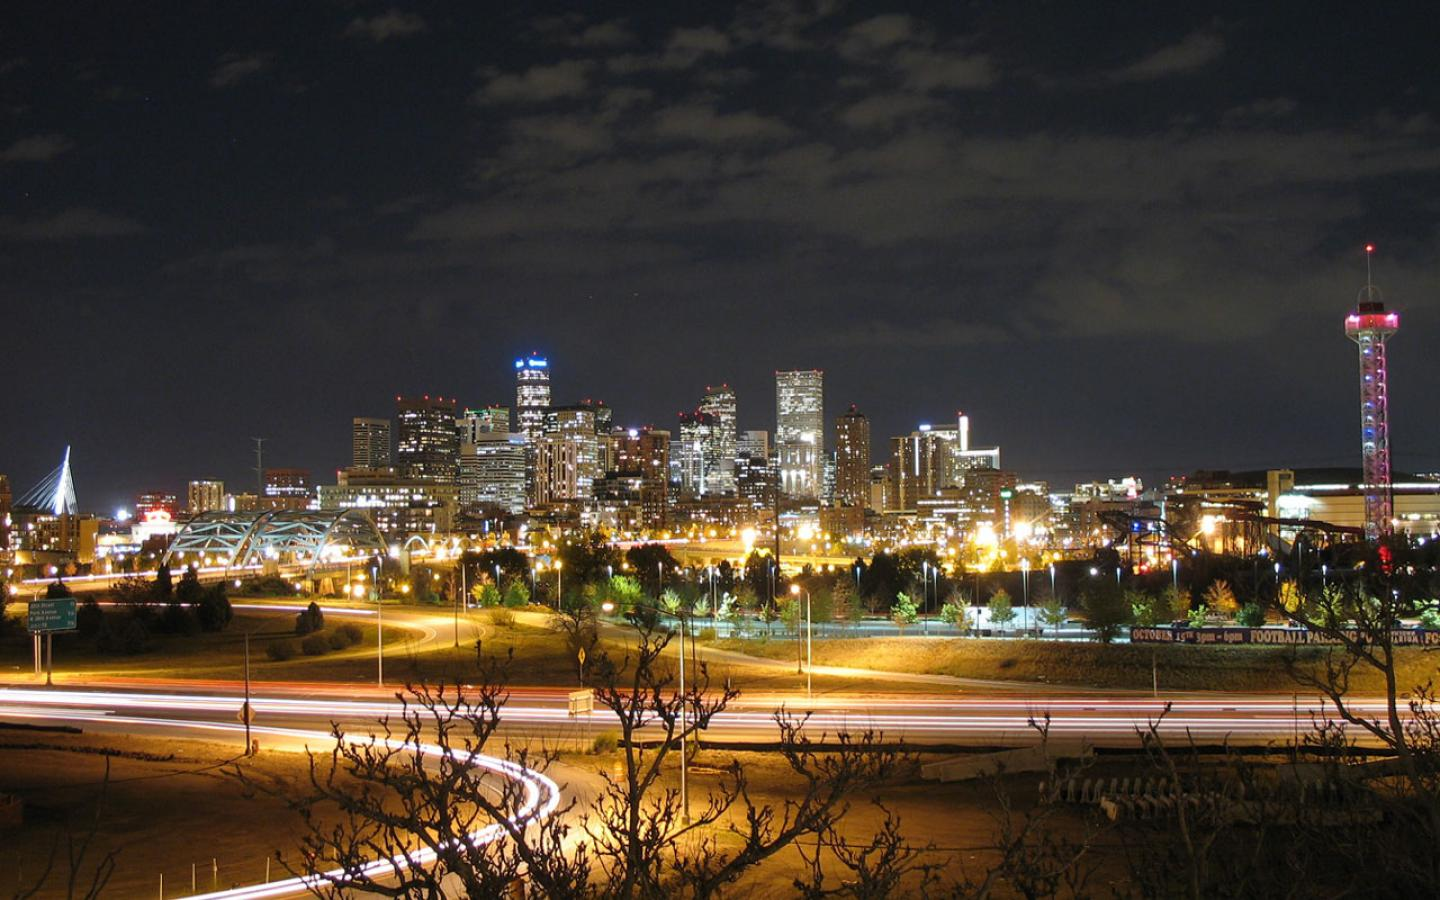 Denver Wallpaper – 1440 x 900 pixels – 173 kB